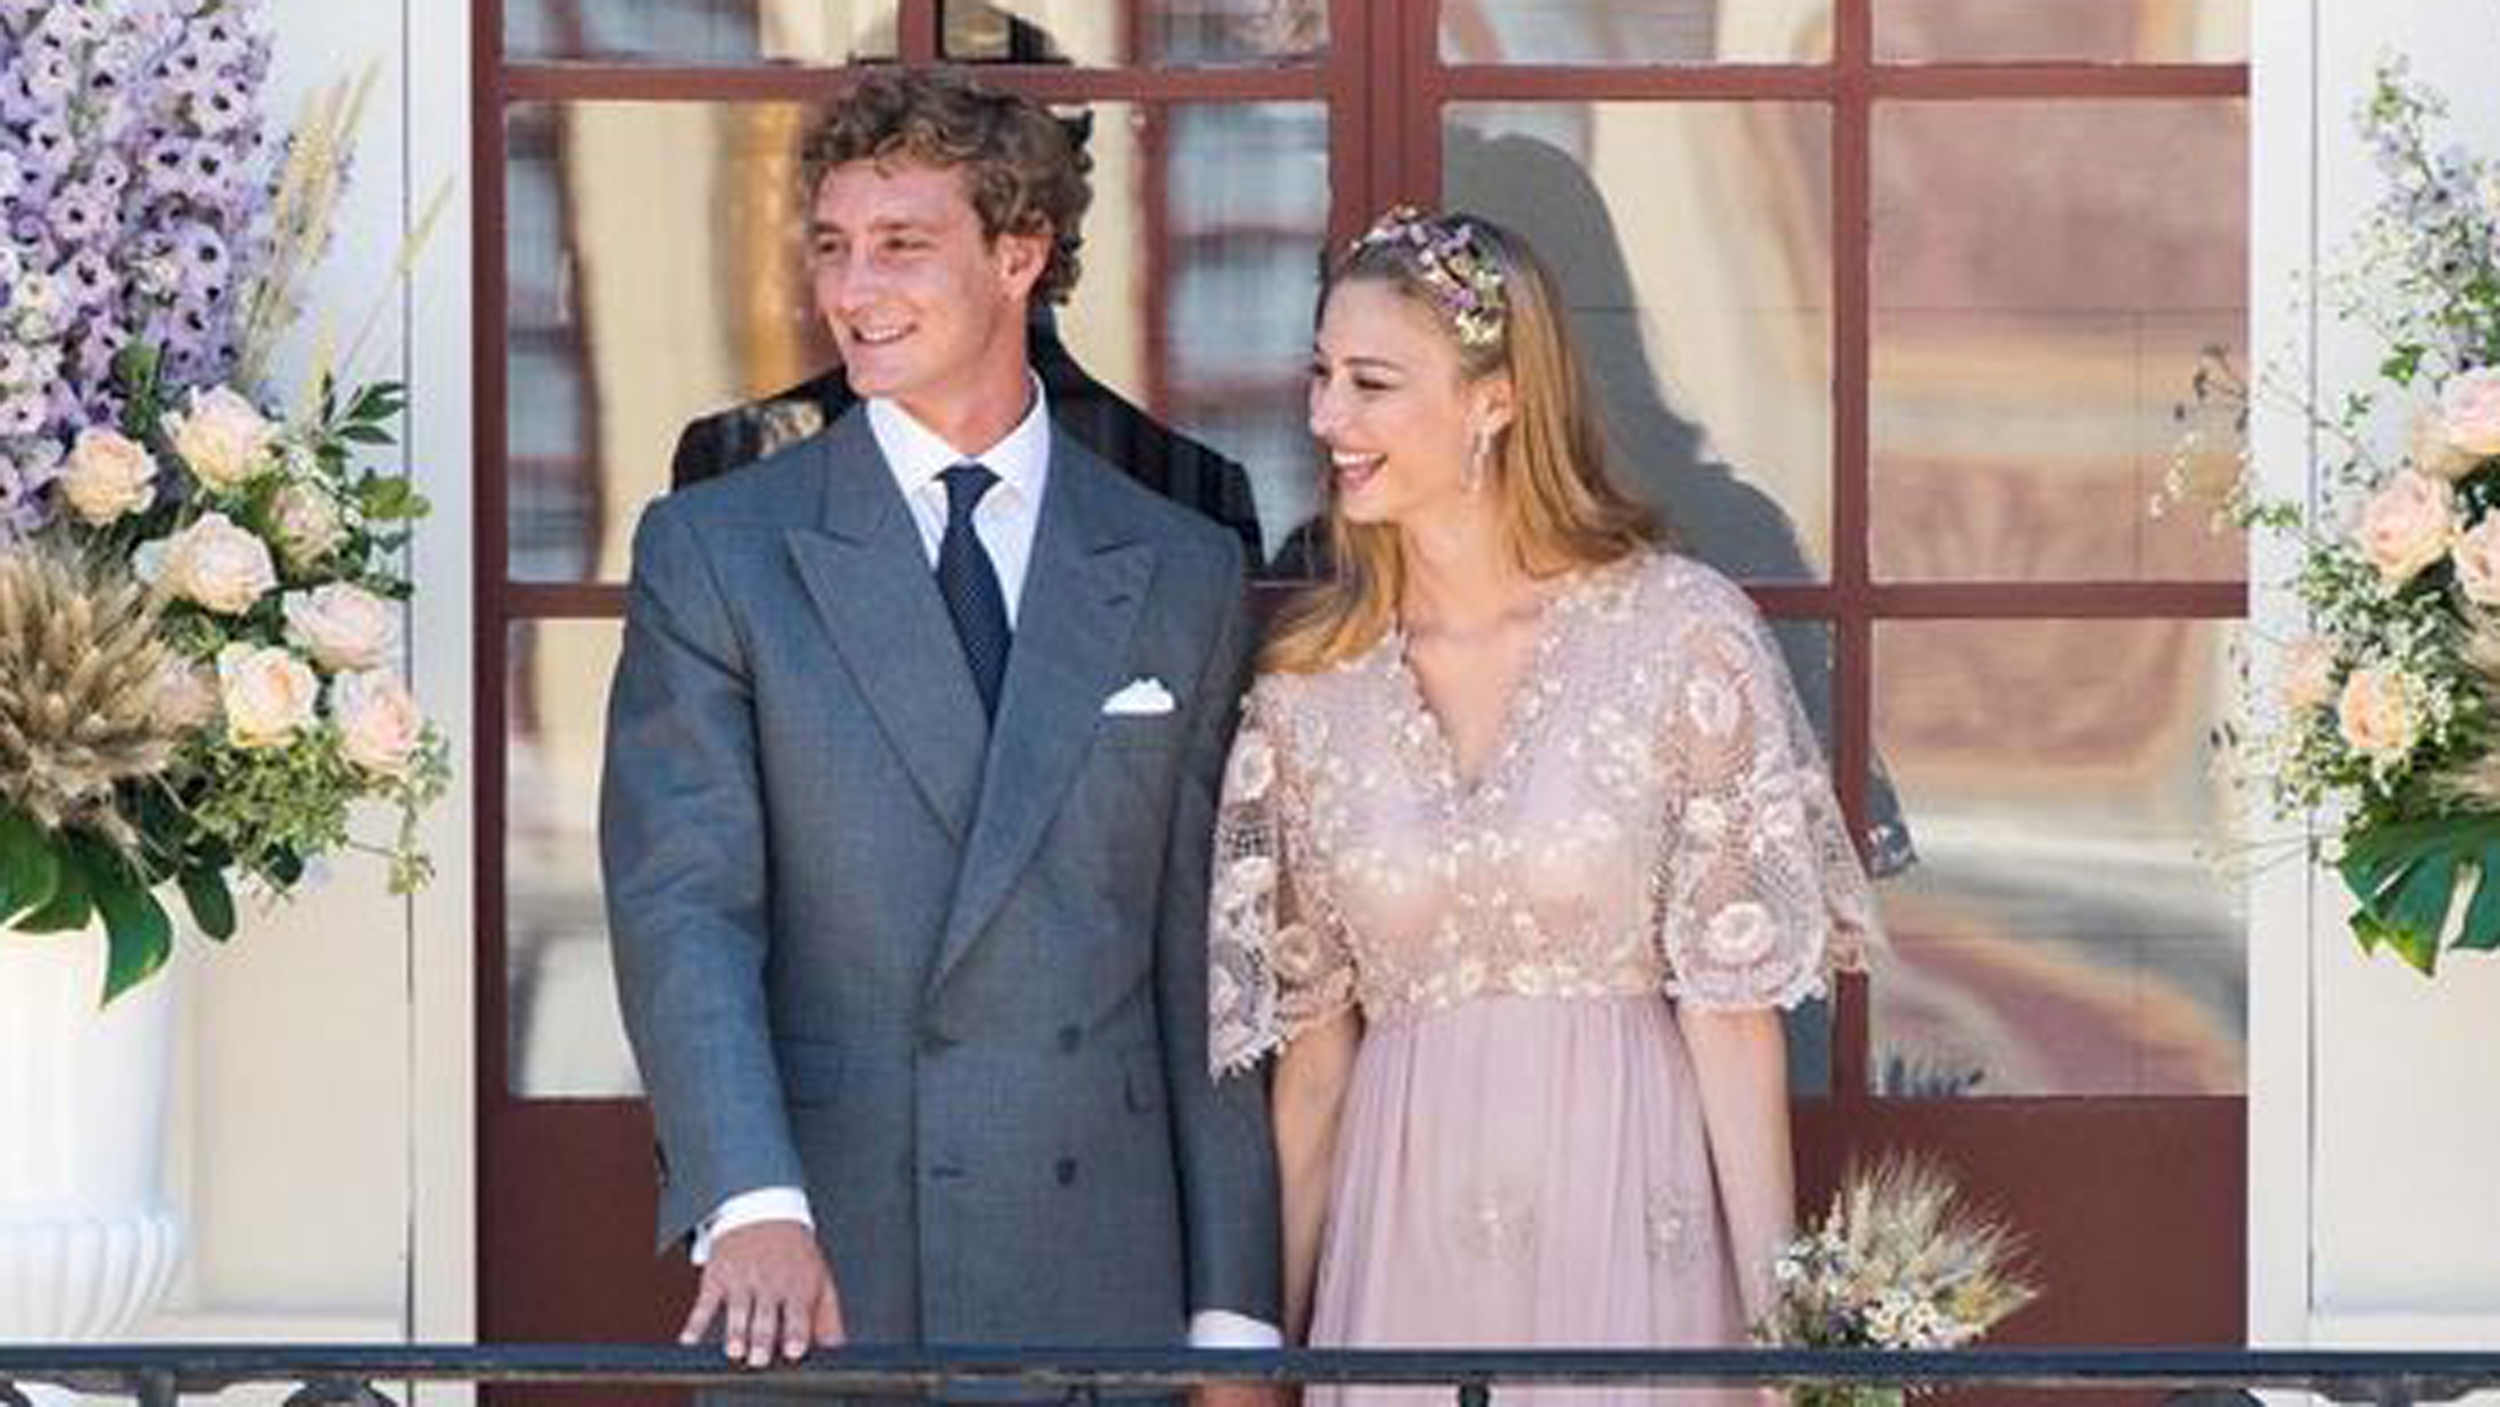 Grace Kelly S Grandson Pierre Casiraghi Weds Beatrice Borromeo In Monaco